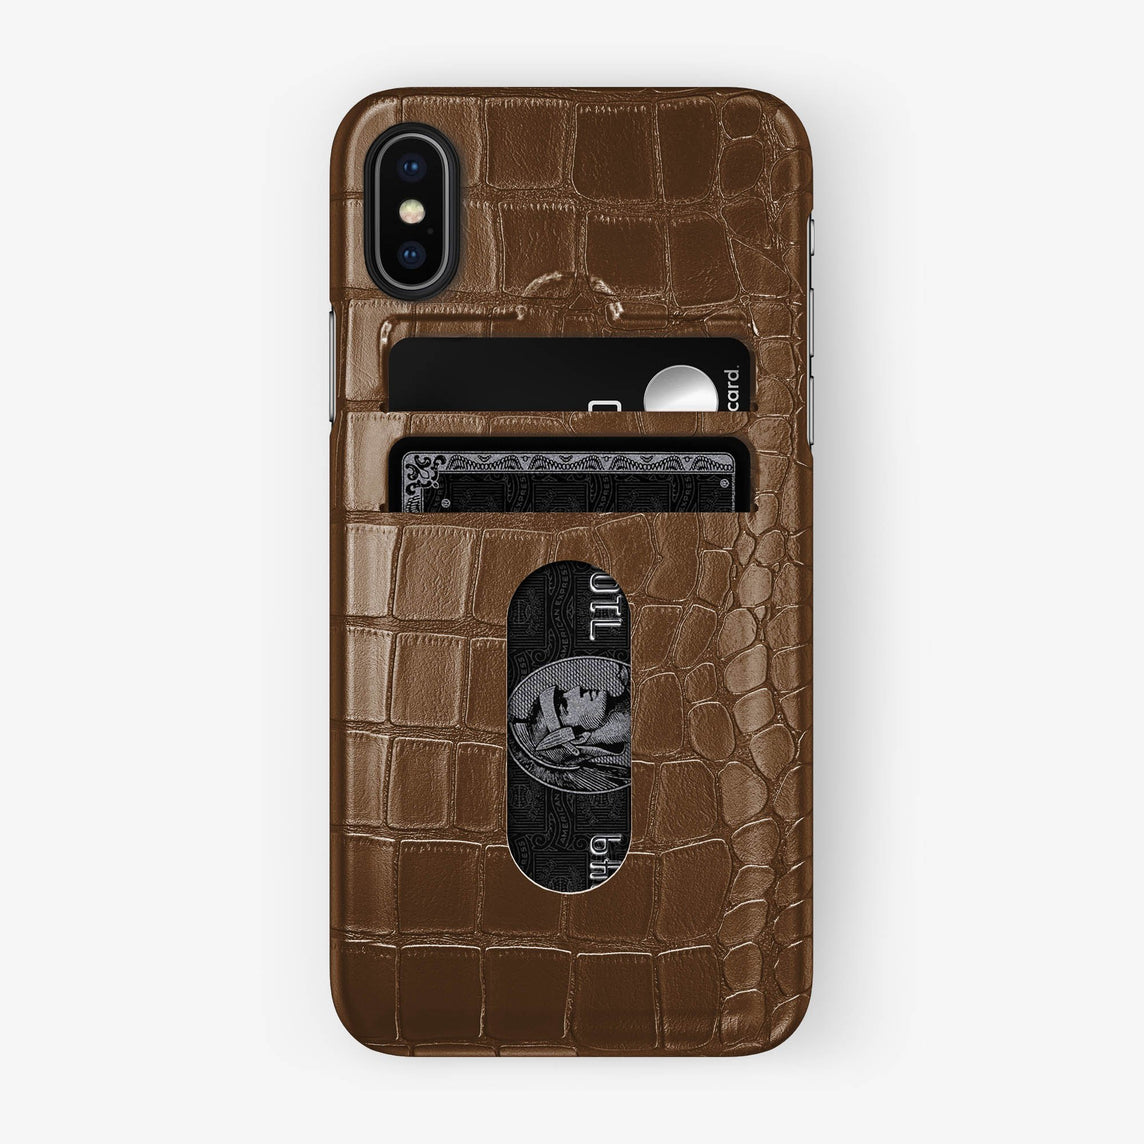 Alligator Card Holder Case iPhone X/Xs | Brown - Black with-personalization